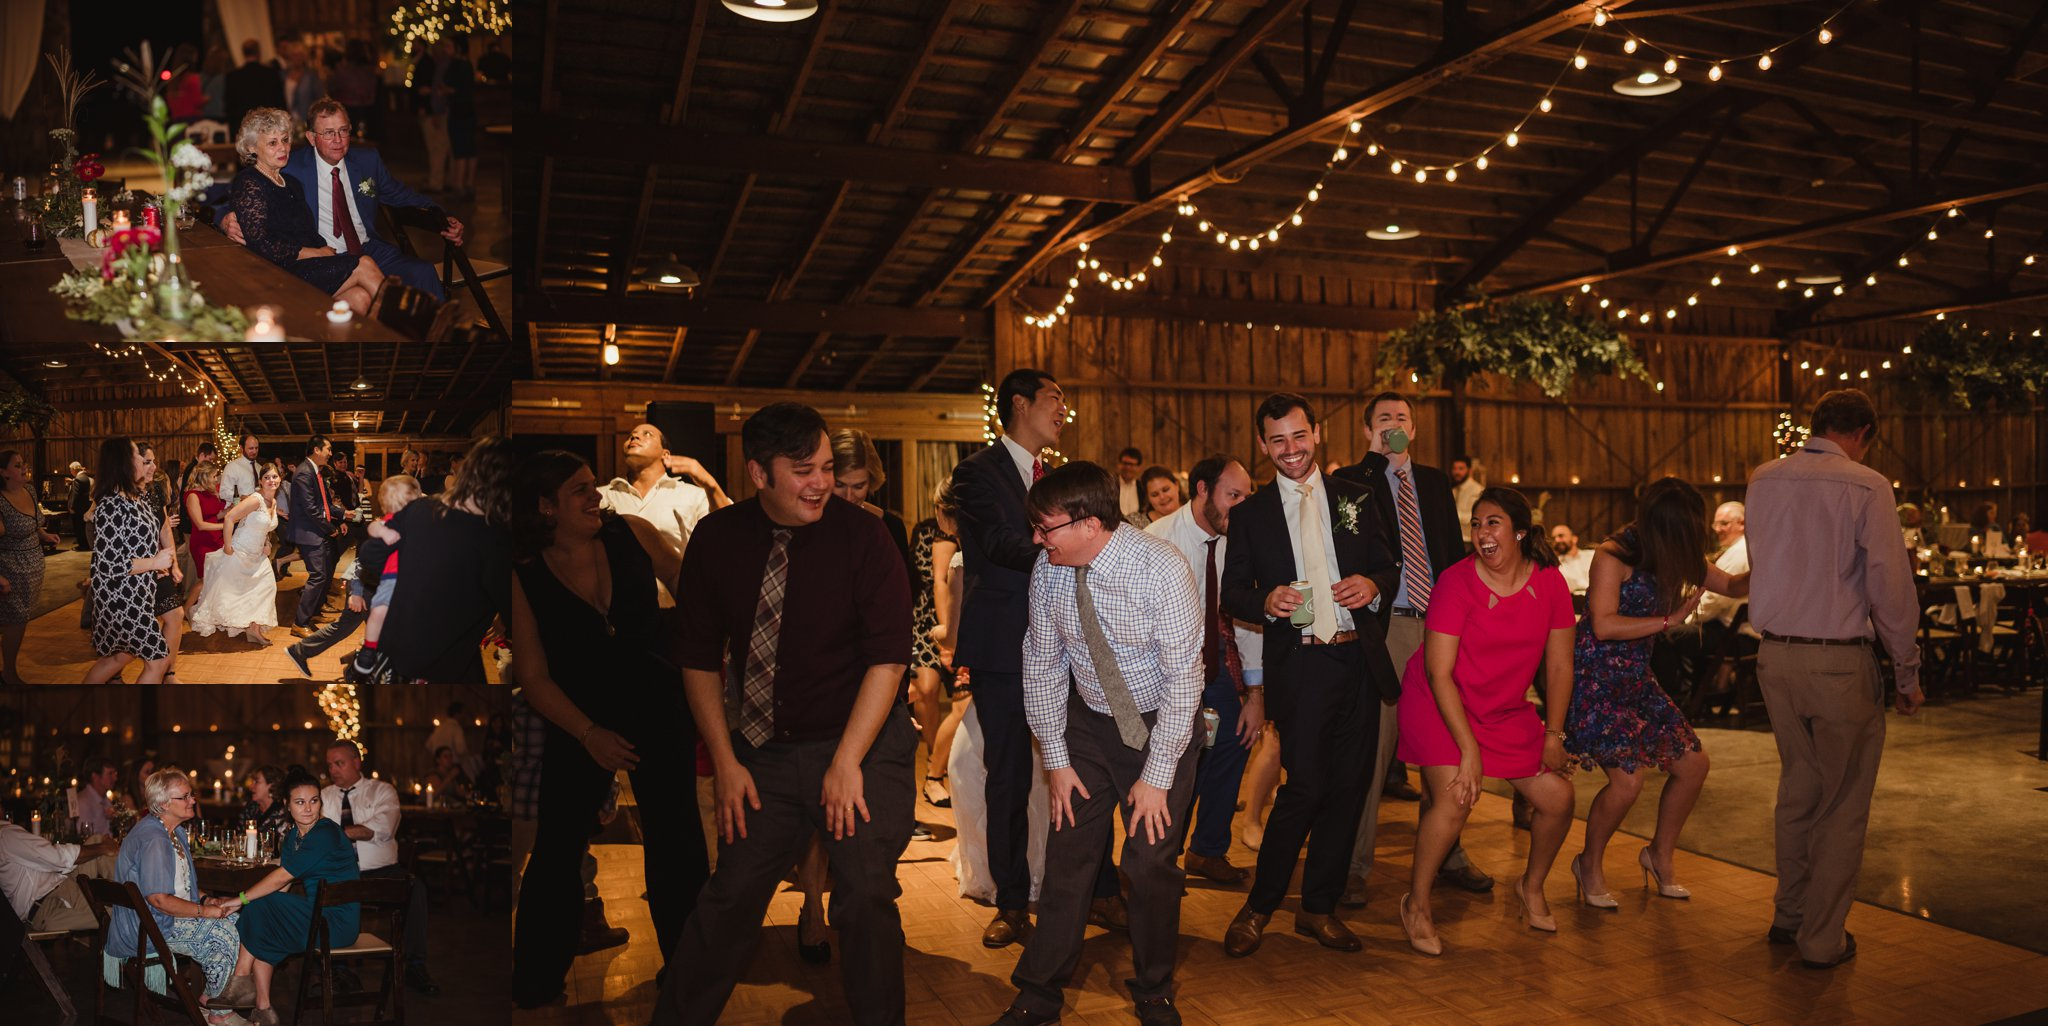 The bride and groom and their guests enjoy dancing during their wedding reception at the Little Herb House in Raleigh, North Carolina. Photos by Rose Trail Images.